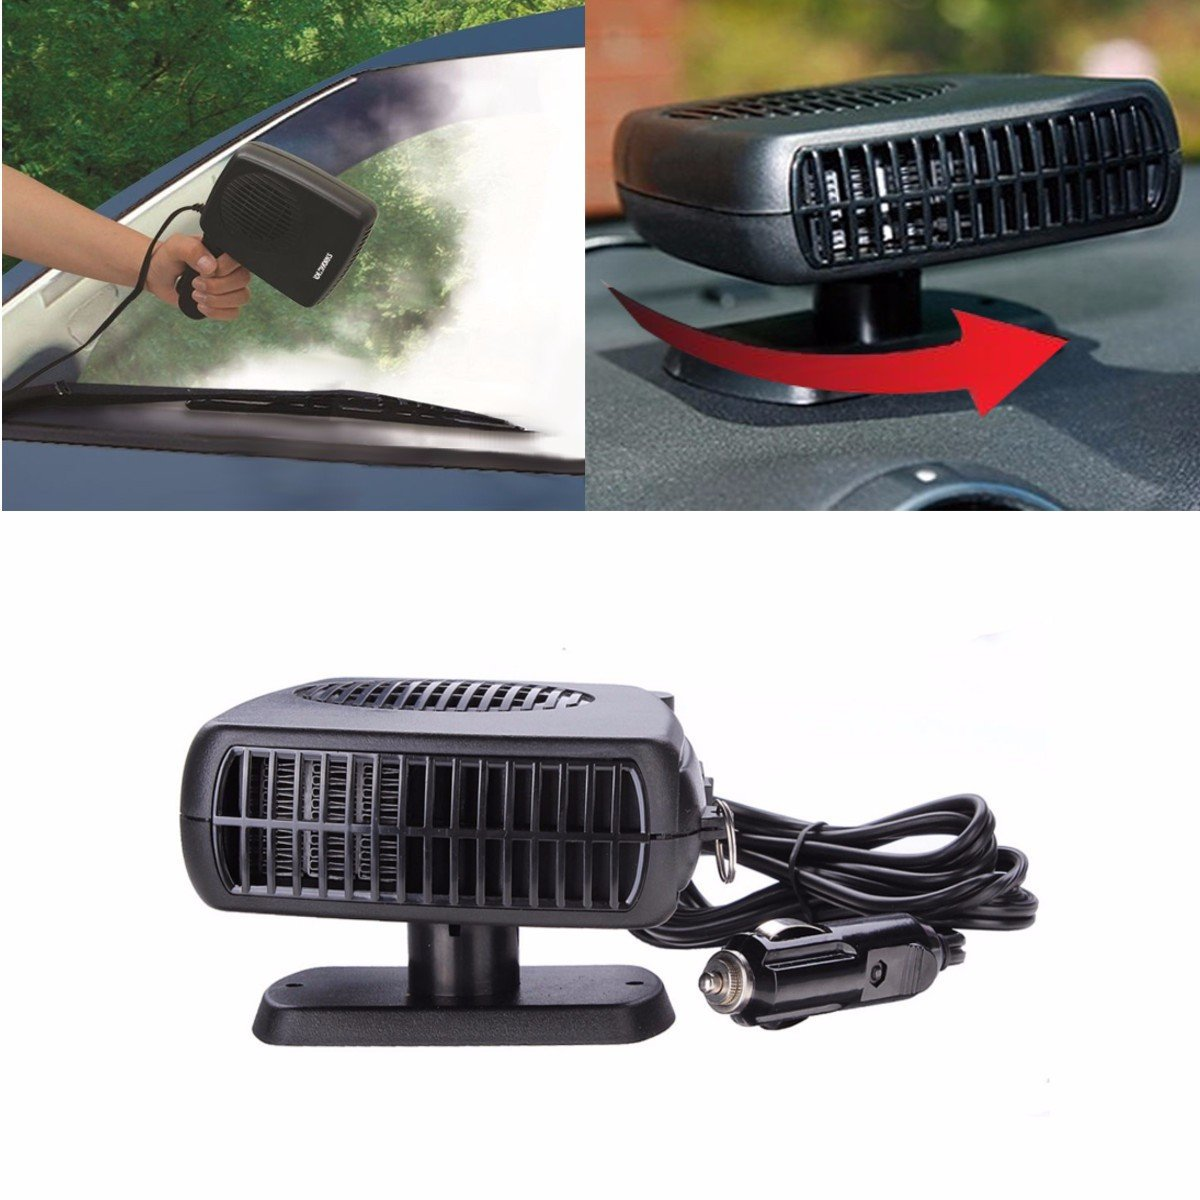 Top Quality 2 in 1 & Cold 12V Car Auto Vehicle Portable Ceramic Heater Heating Cooling Fan Defroster Black